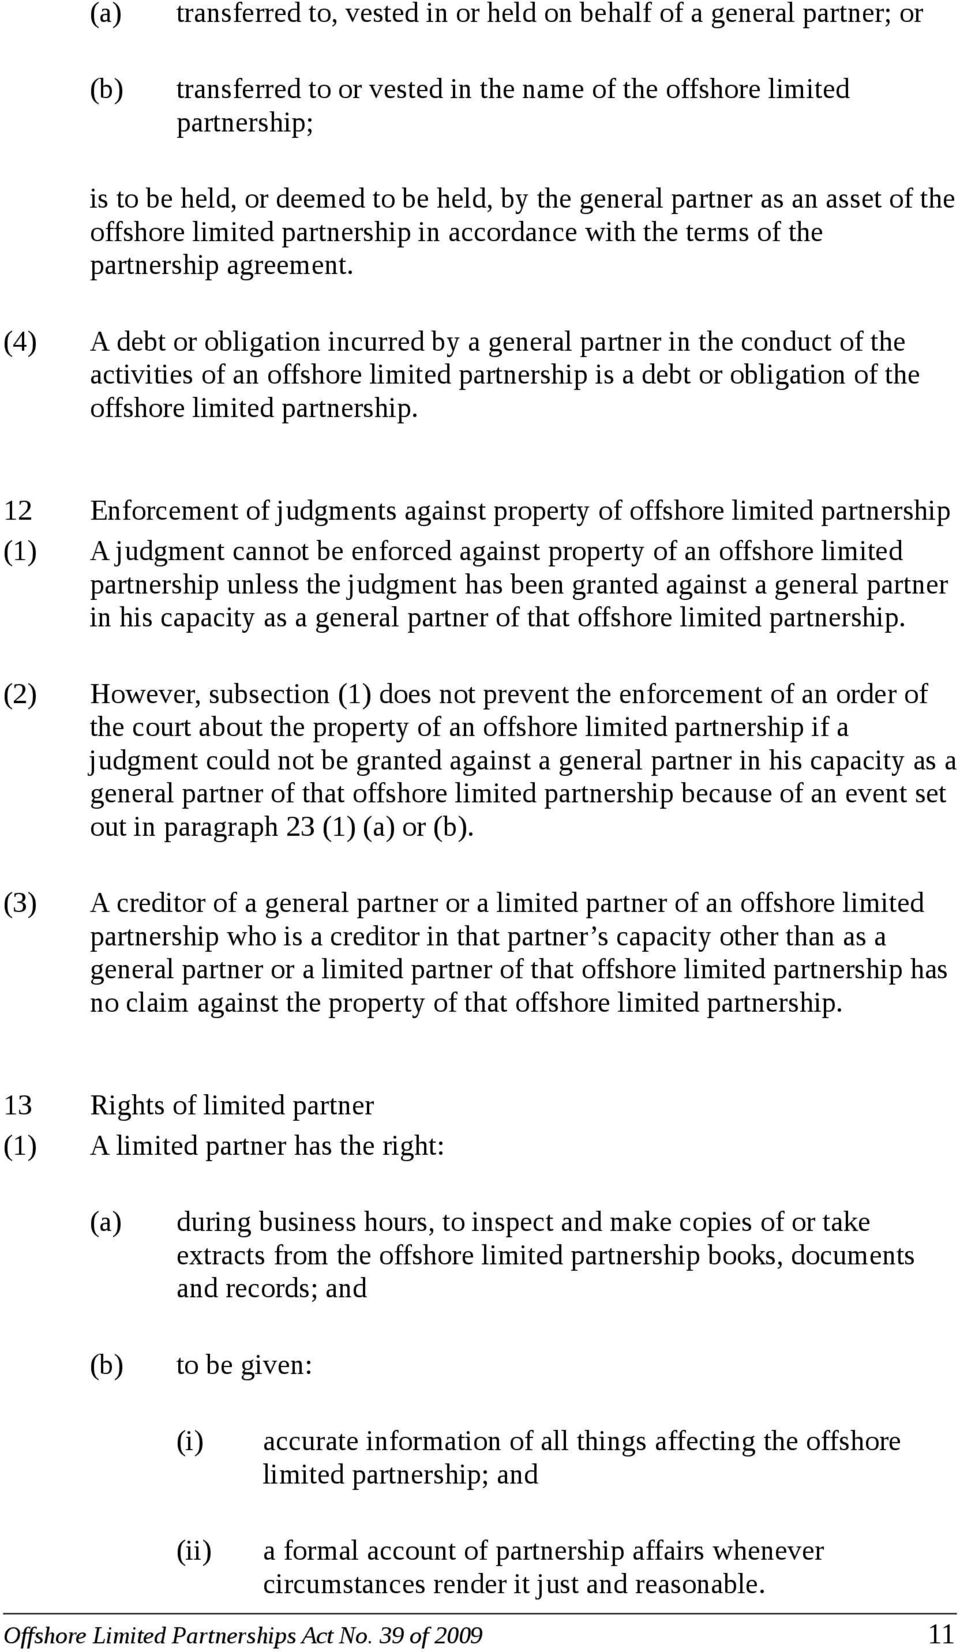 (4) A debt or obligation incurred by a general partner in the conduct of the activities of an offshore limited partnership is a debt or obligation of the offshore limited partnership.